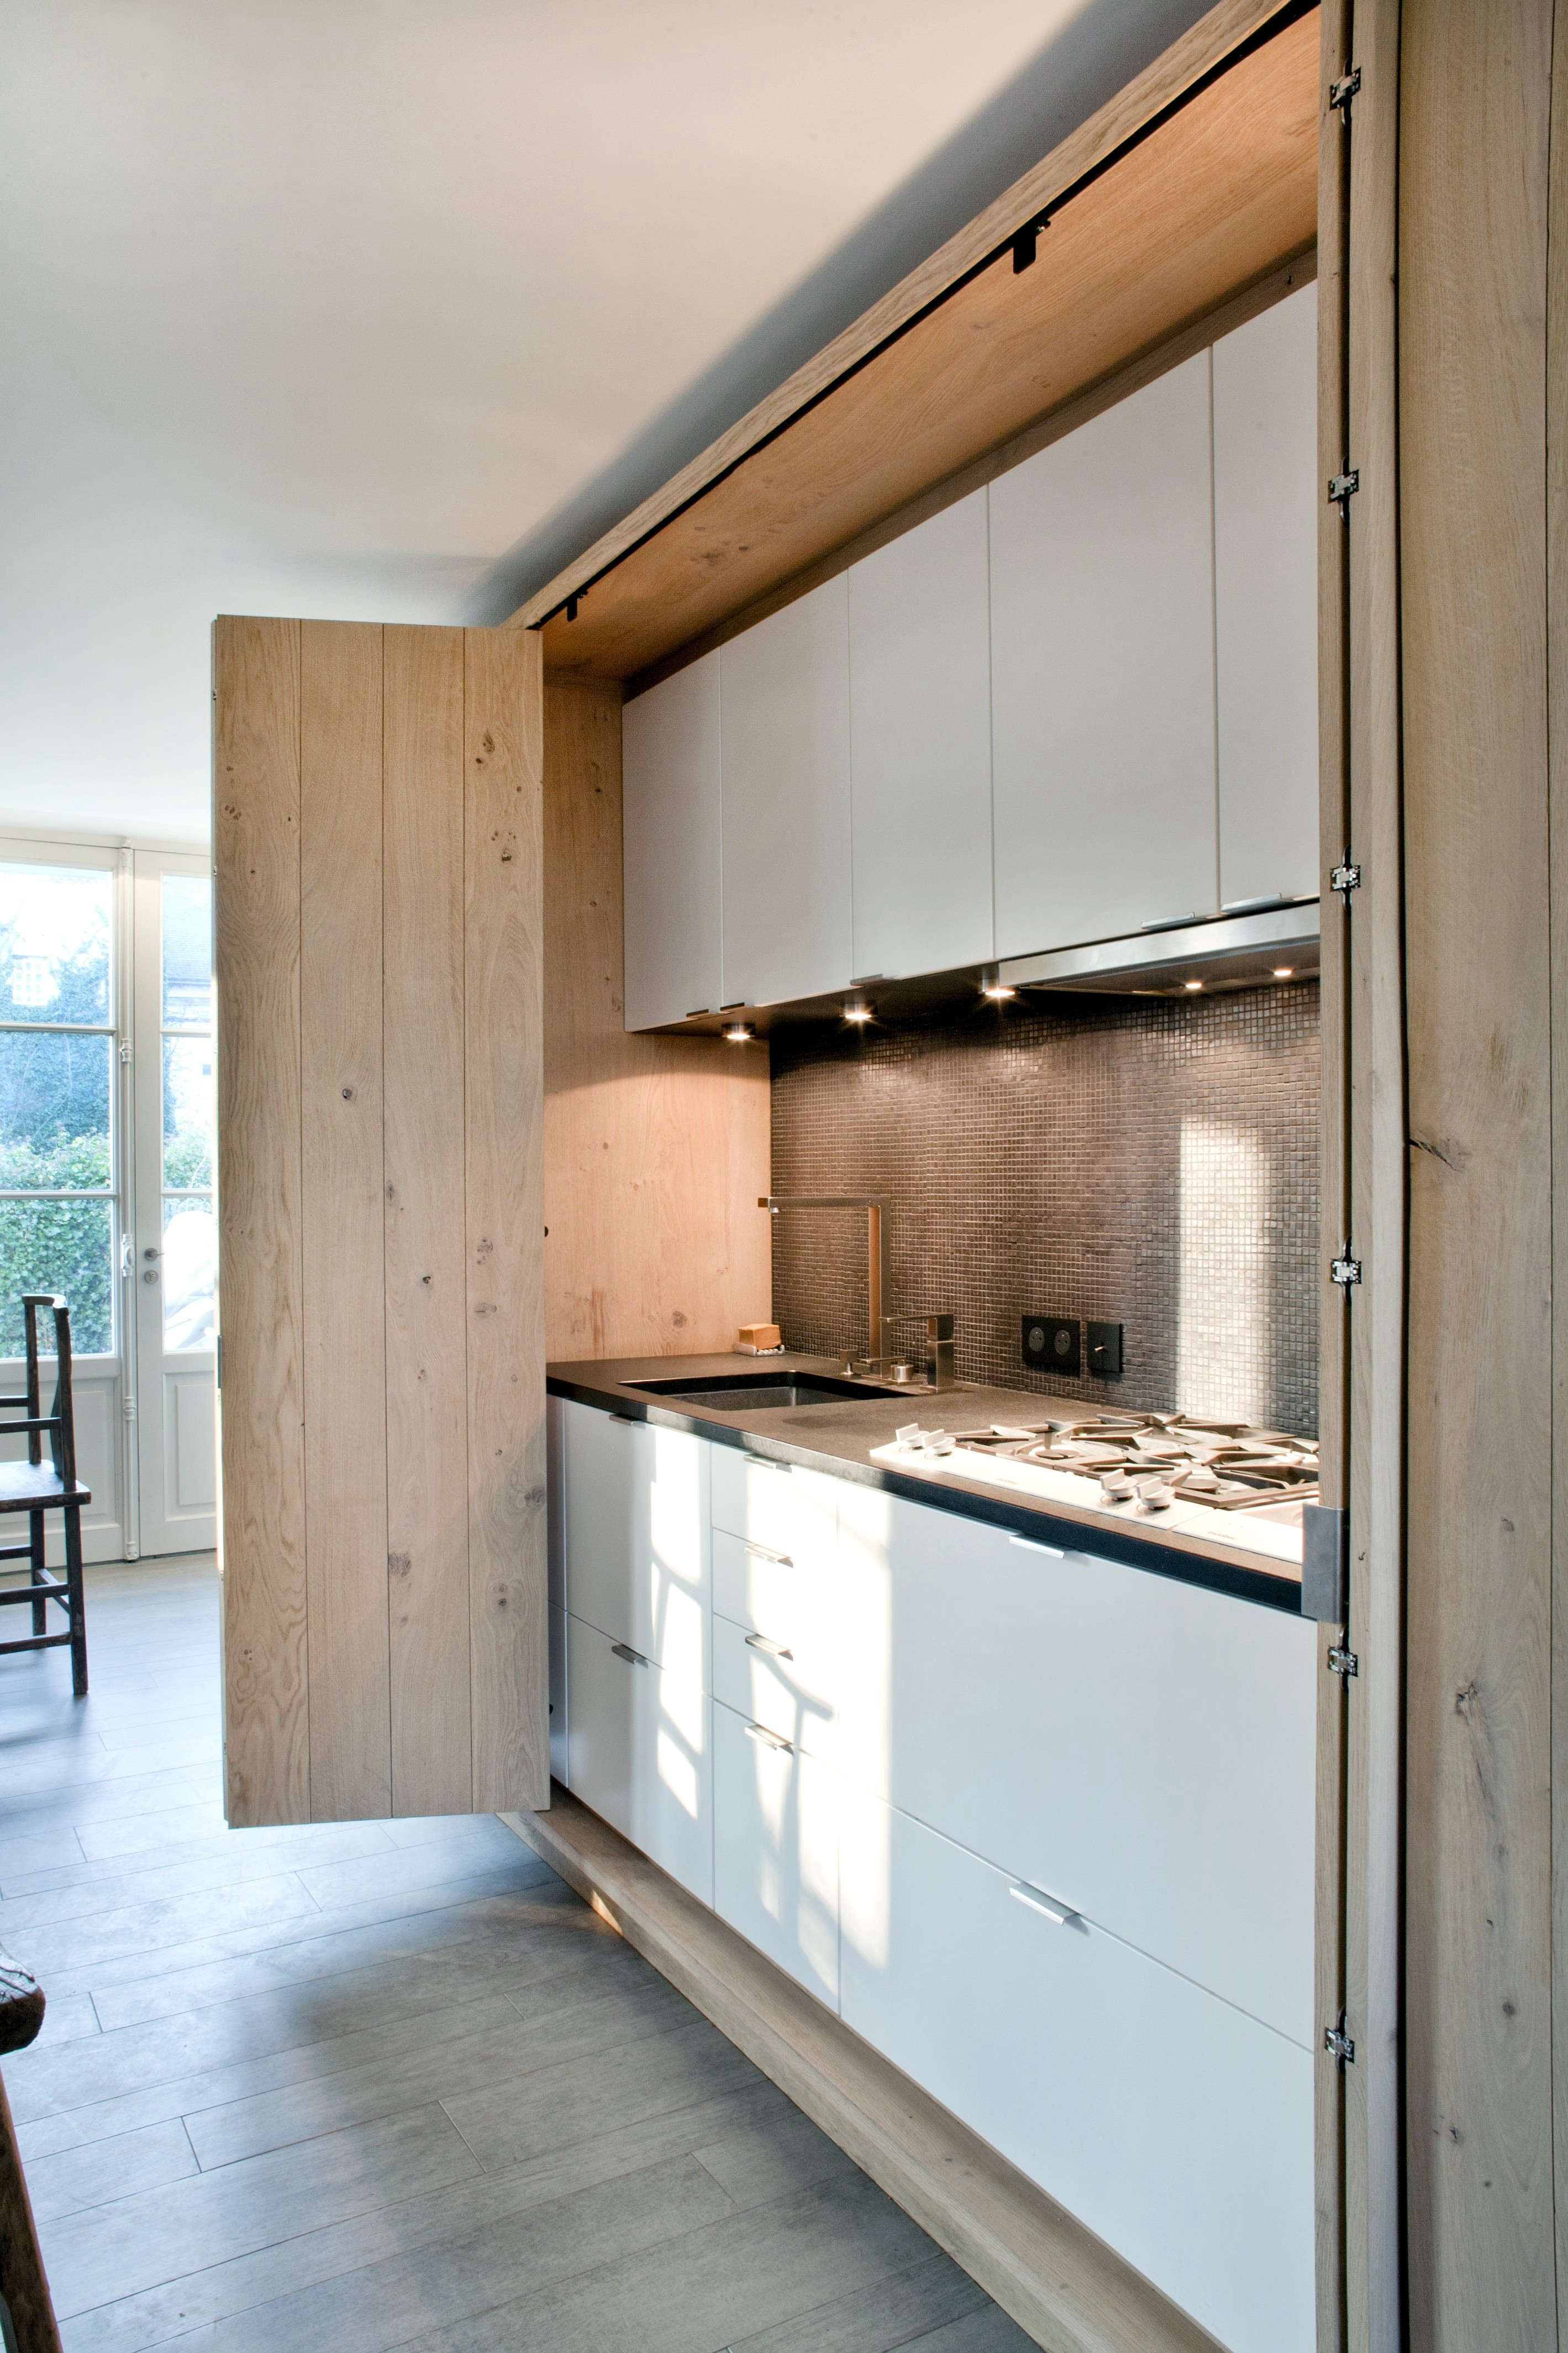 Attrayant Above: French Architect Olivier Chabaud Concealed An Entire Kitchen Behind  Folding Doors In This Country House.